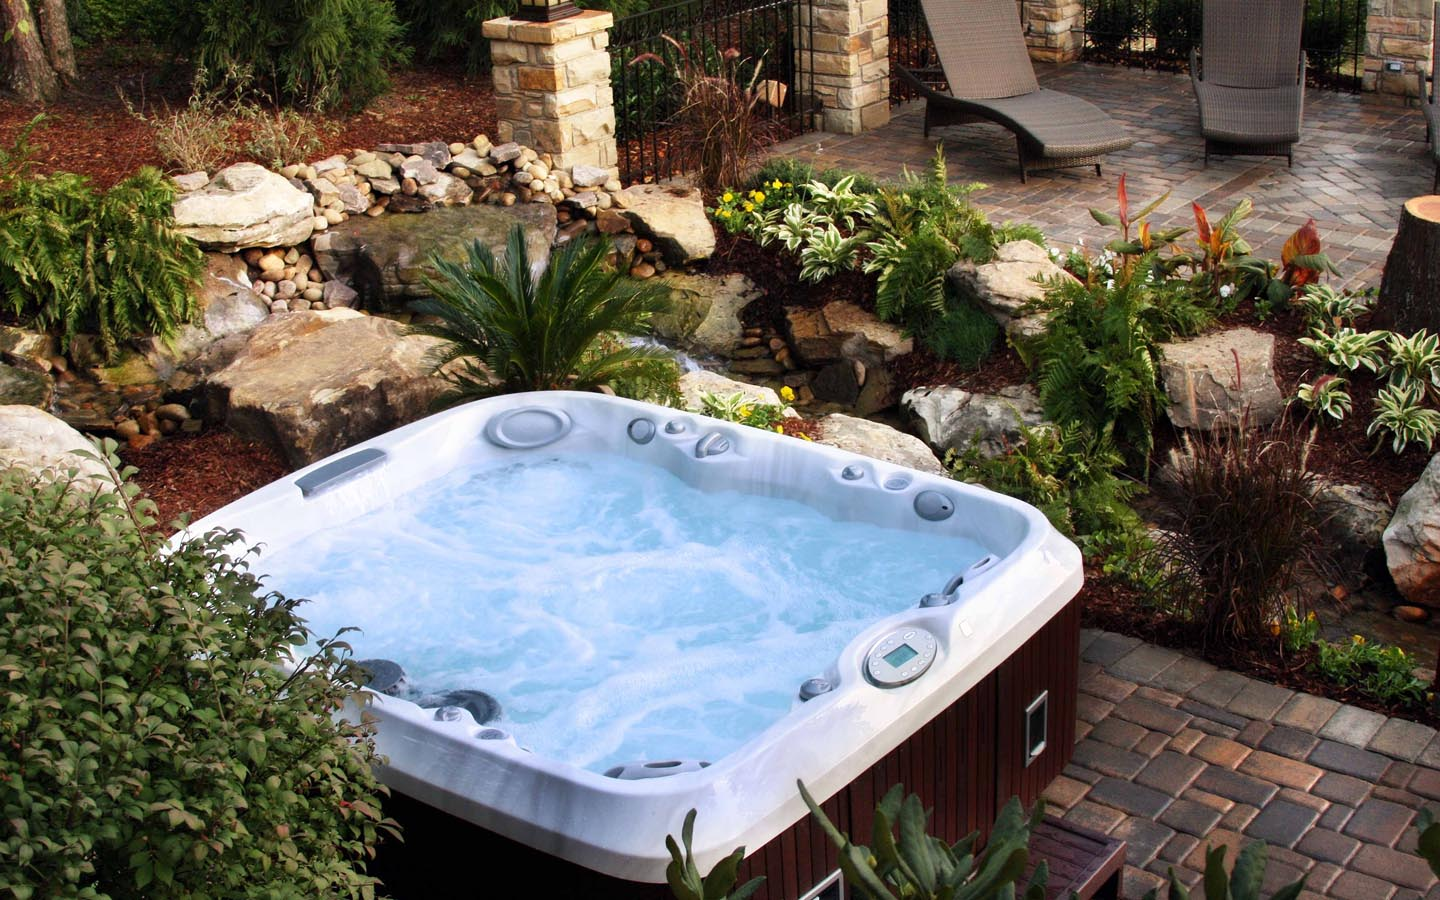 Jacuzzi Pool Hot Tub Outdoor Jacuzzi Hot Tubs And What You Should Know About